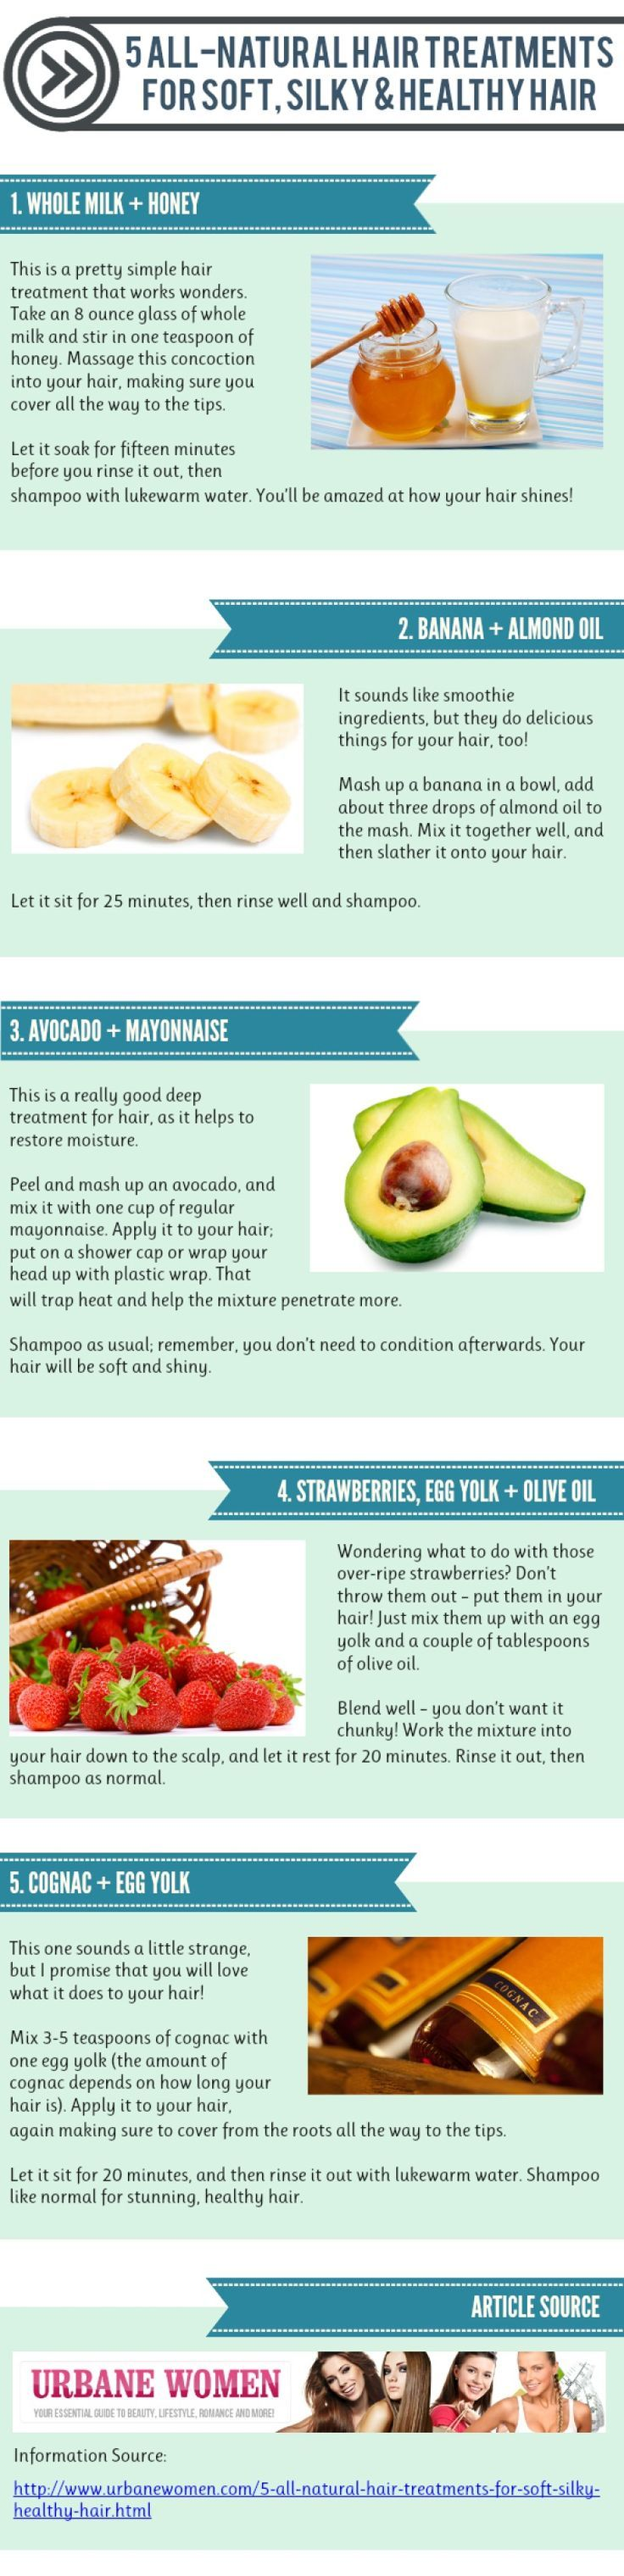 5 natural hair treatment for soft, silky, and healthy hair...